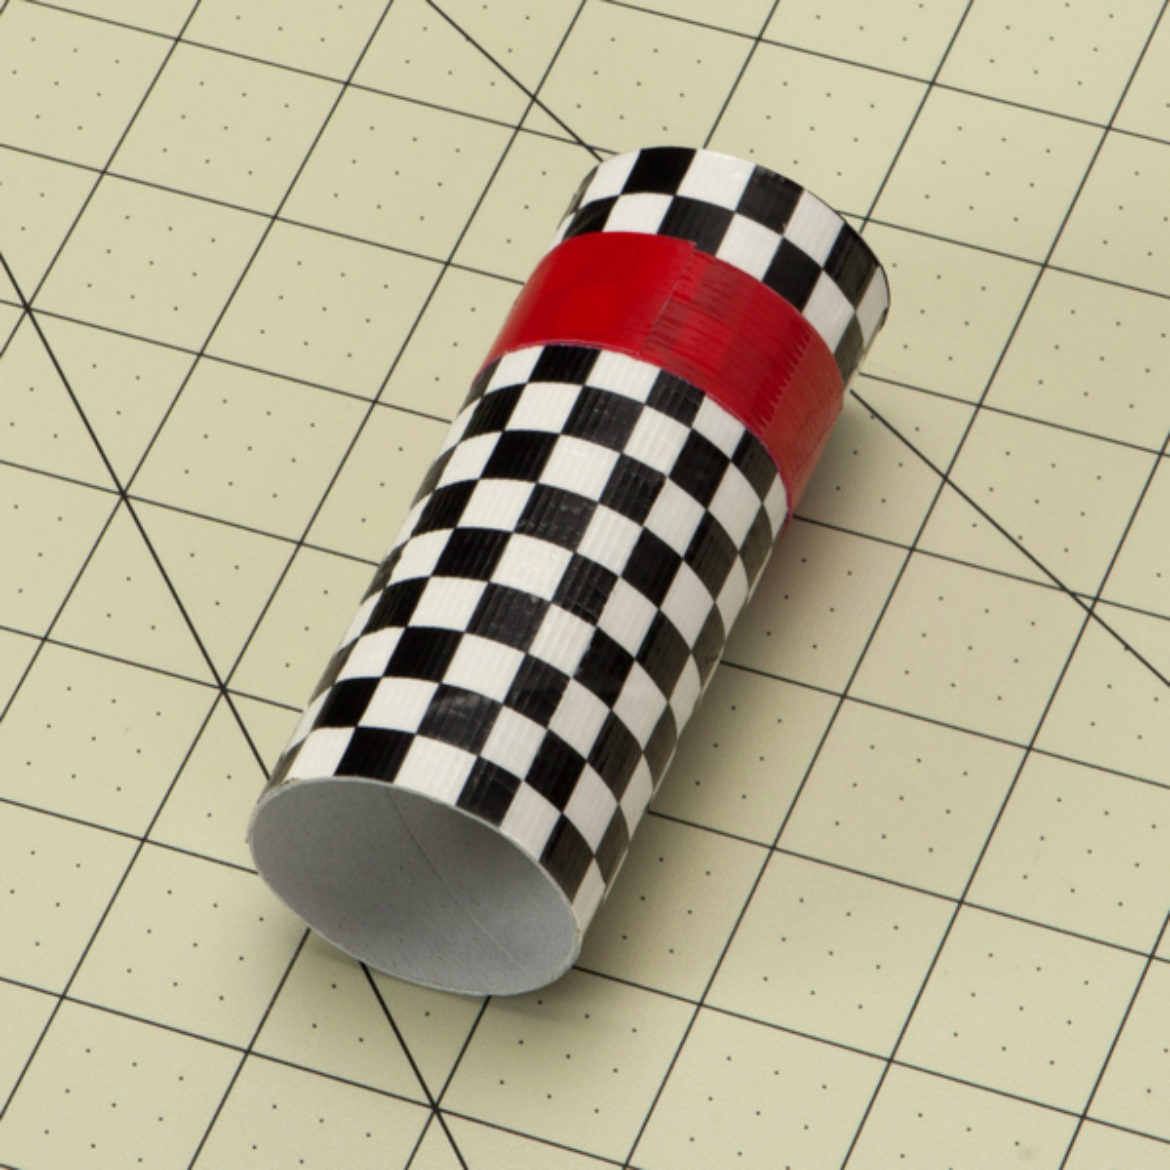 Duck Taped cardboard tube with a red strip added to the top half